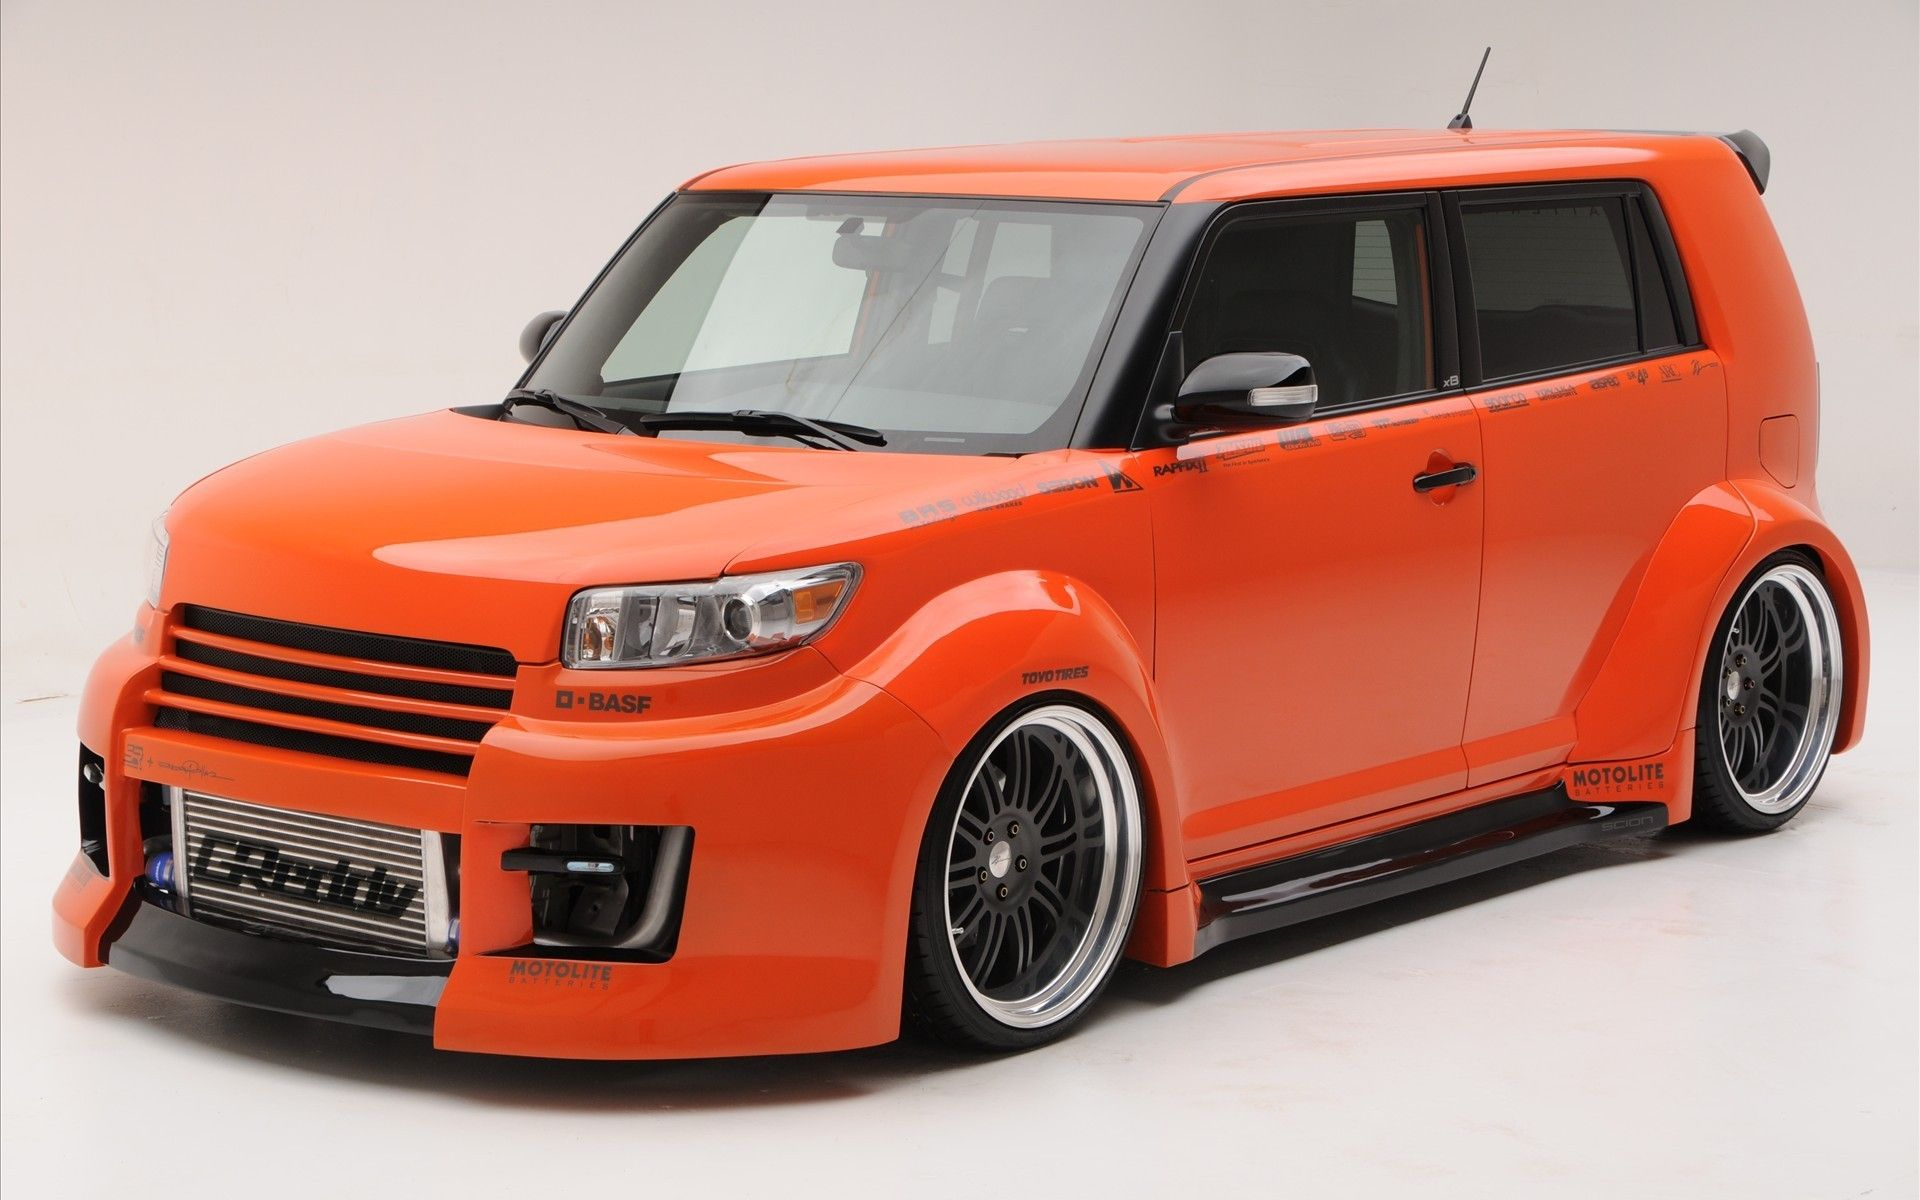 Pin By South Coast Toyota On Scion Sights Scion Xb 2009 Scion Xb Toyota Scion Xb